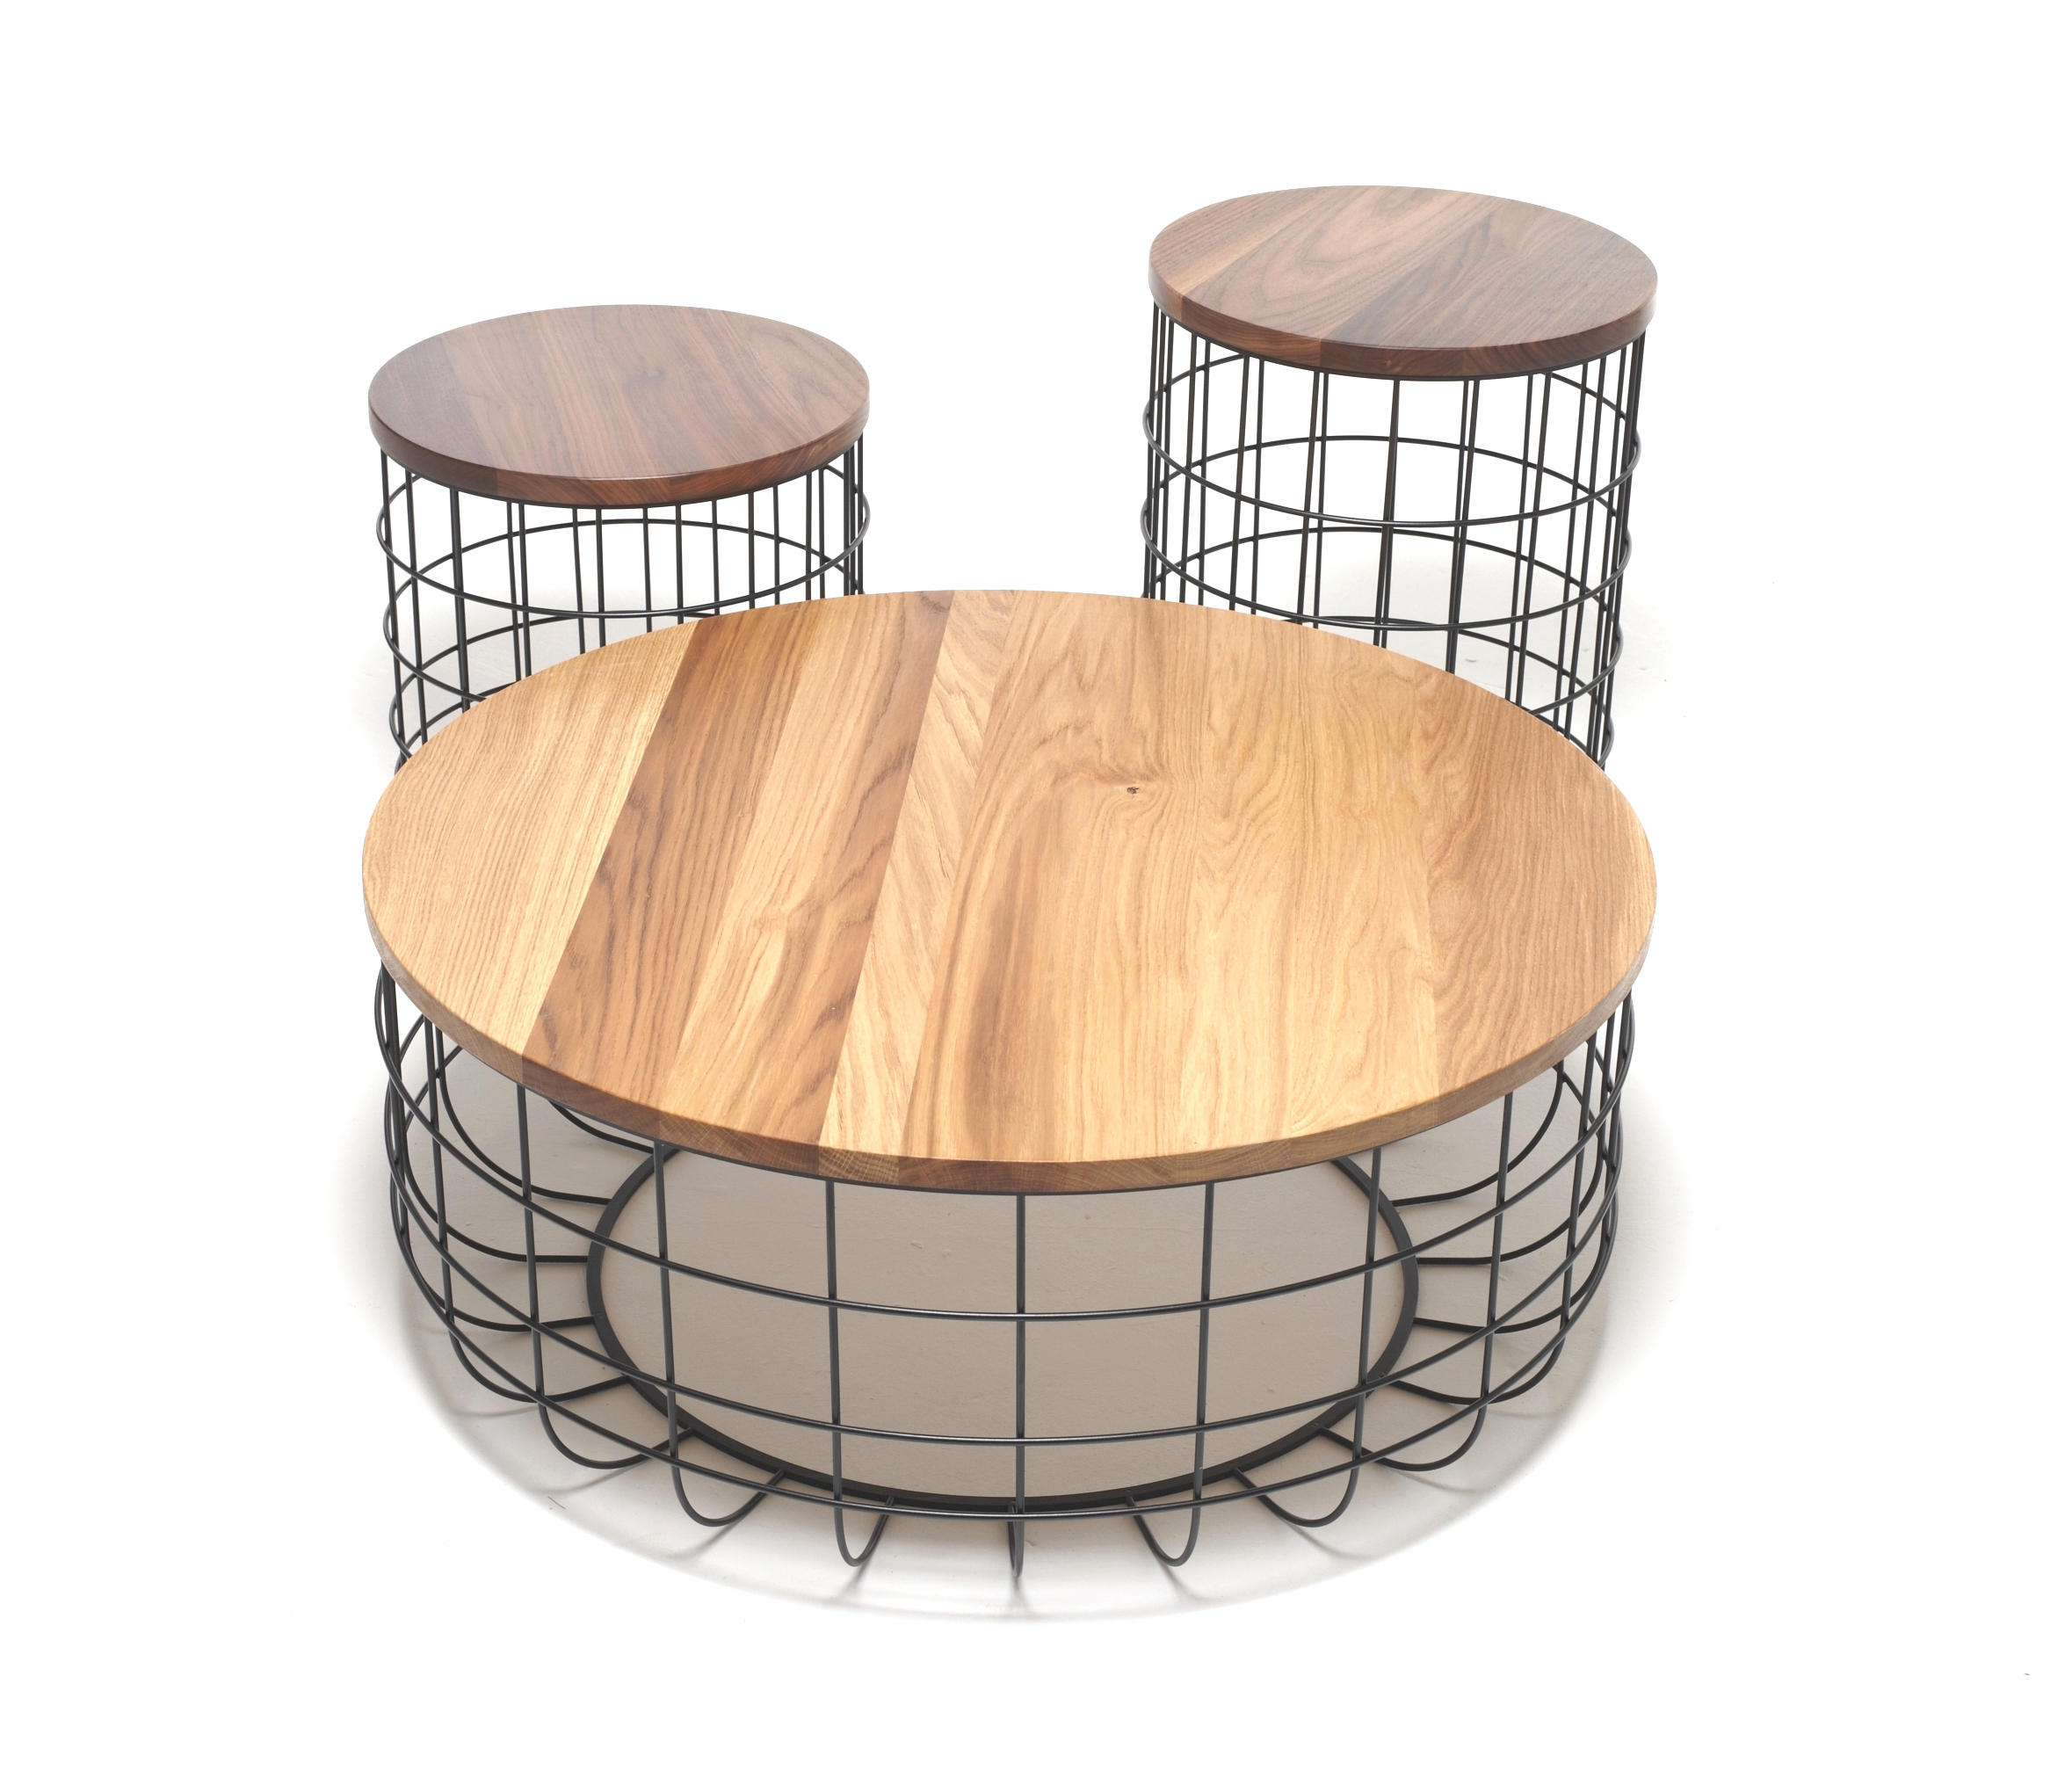 Wire group sidetable side tables from dare studio architonic wire group sidetable by dare studio greentooth Gallery